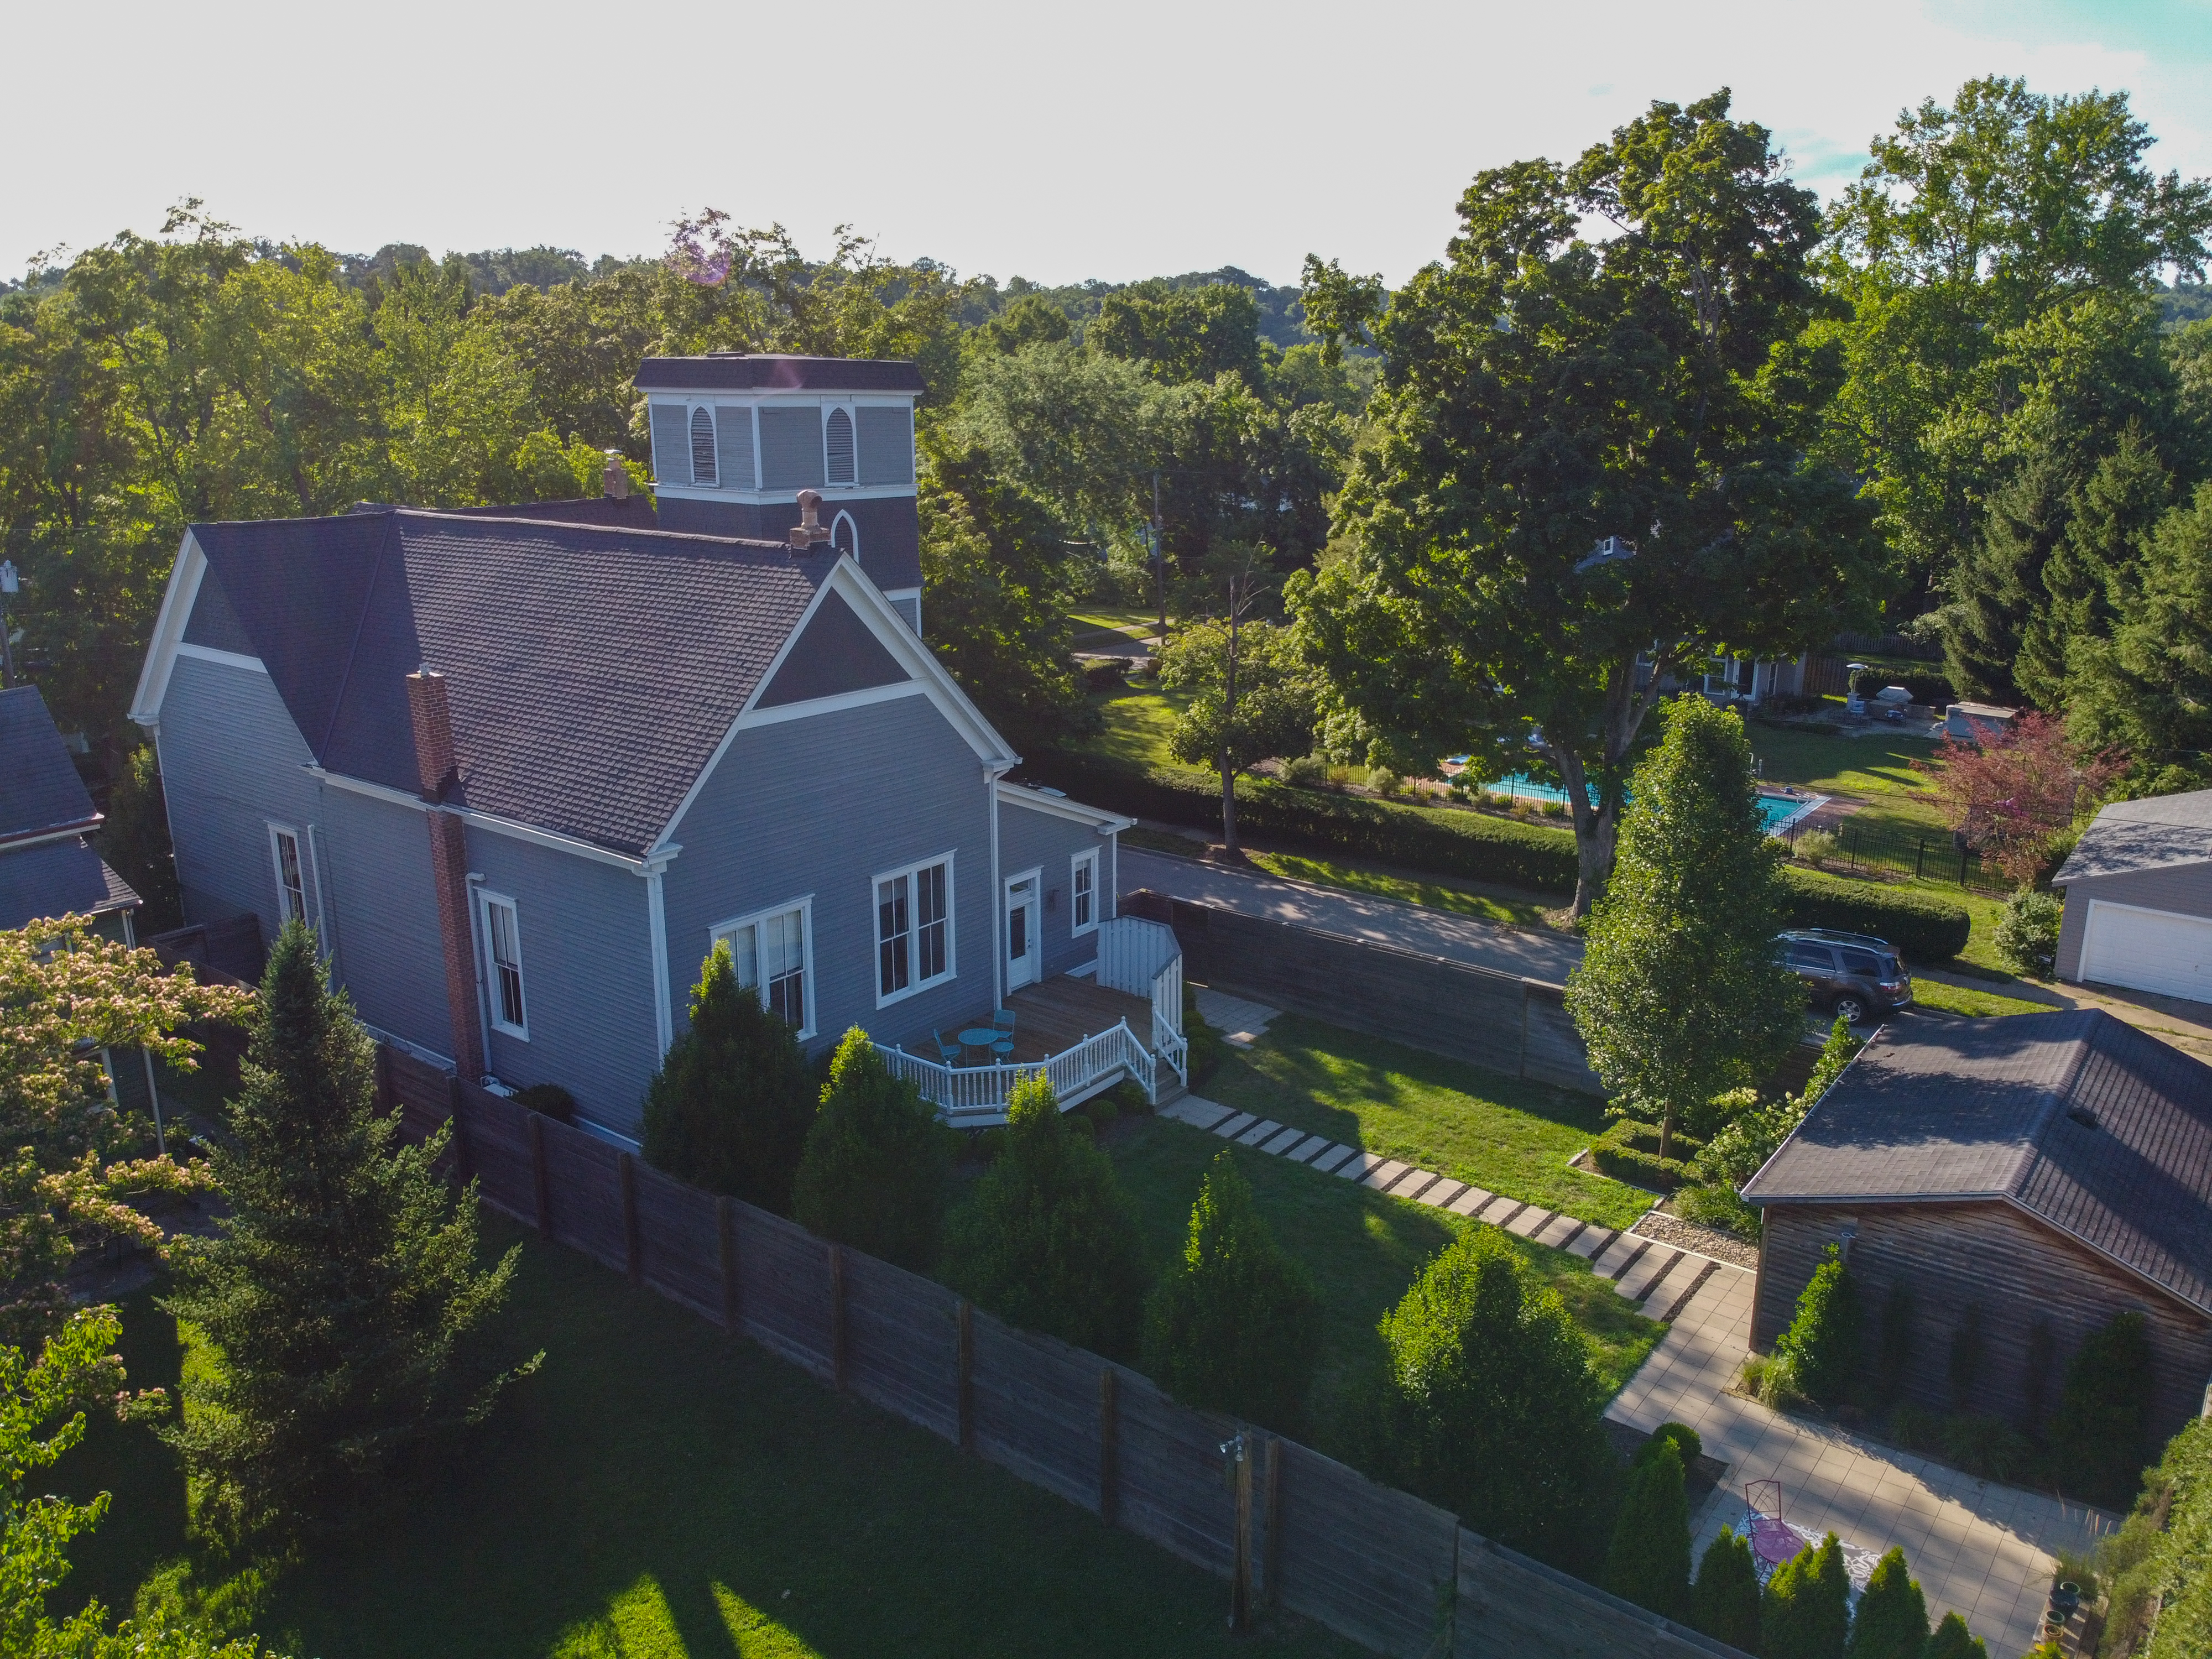 In 1888, Sarah Scott and her sister founded the Society of the Universalists of Milford and based it out of their home. When they outgrew that space, a Universalist church was constructed at 102 Mound Avenue. The church was christened on September 8, 1892 as St. Paul's, and the Reverend W.M. Backus was its first pastor. By the 1950s, the Universalists moved on from the building. SOURCE: Images of America: Milford by the Greater Milford Area Historical Society (2008) / Image: Josh Isaacs // Published: 8.19.20